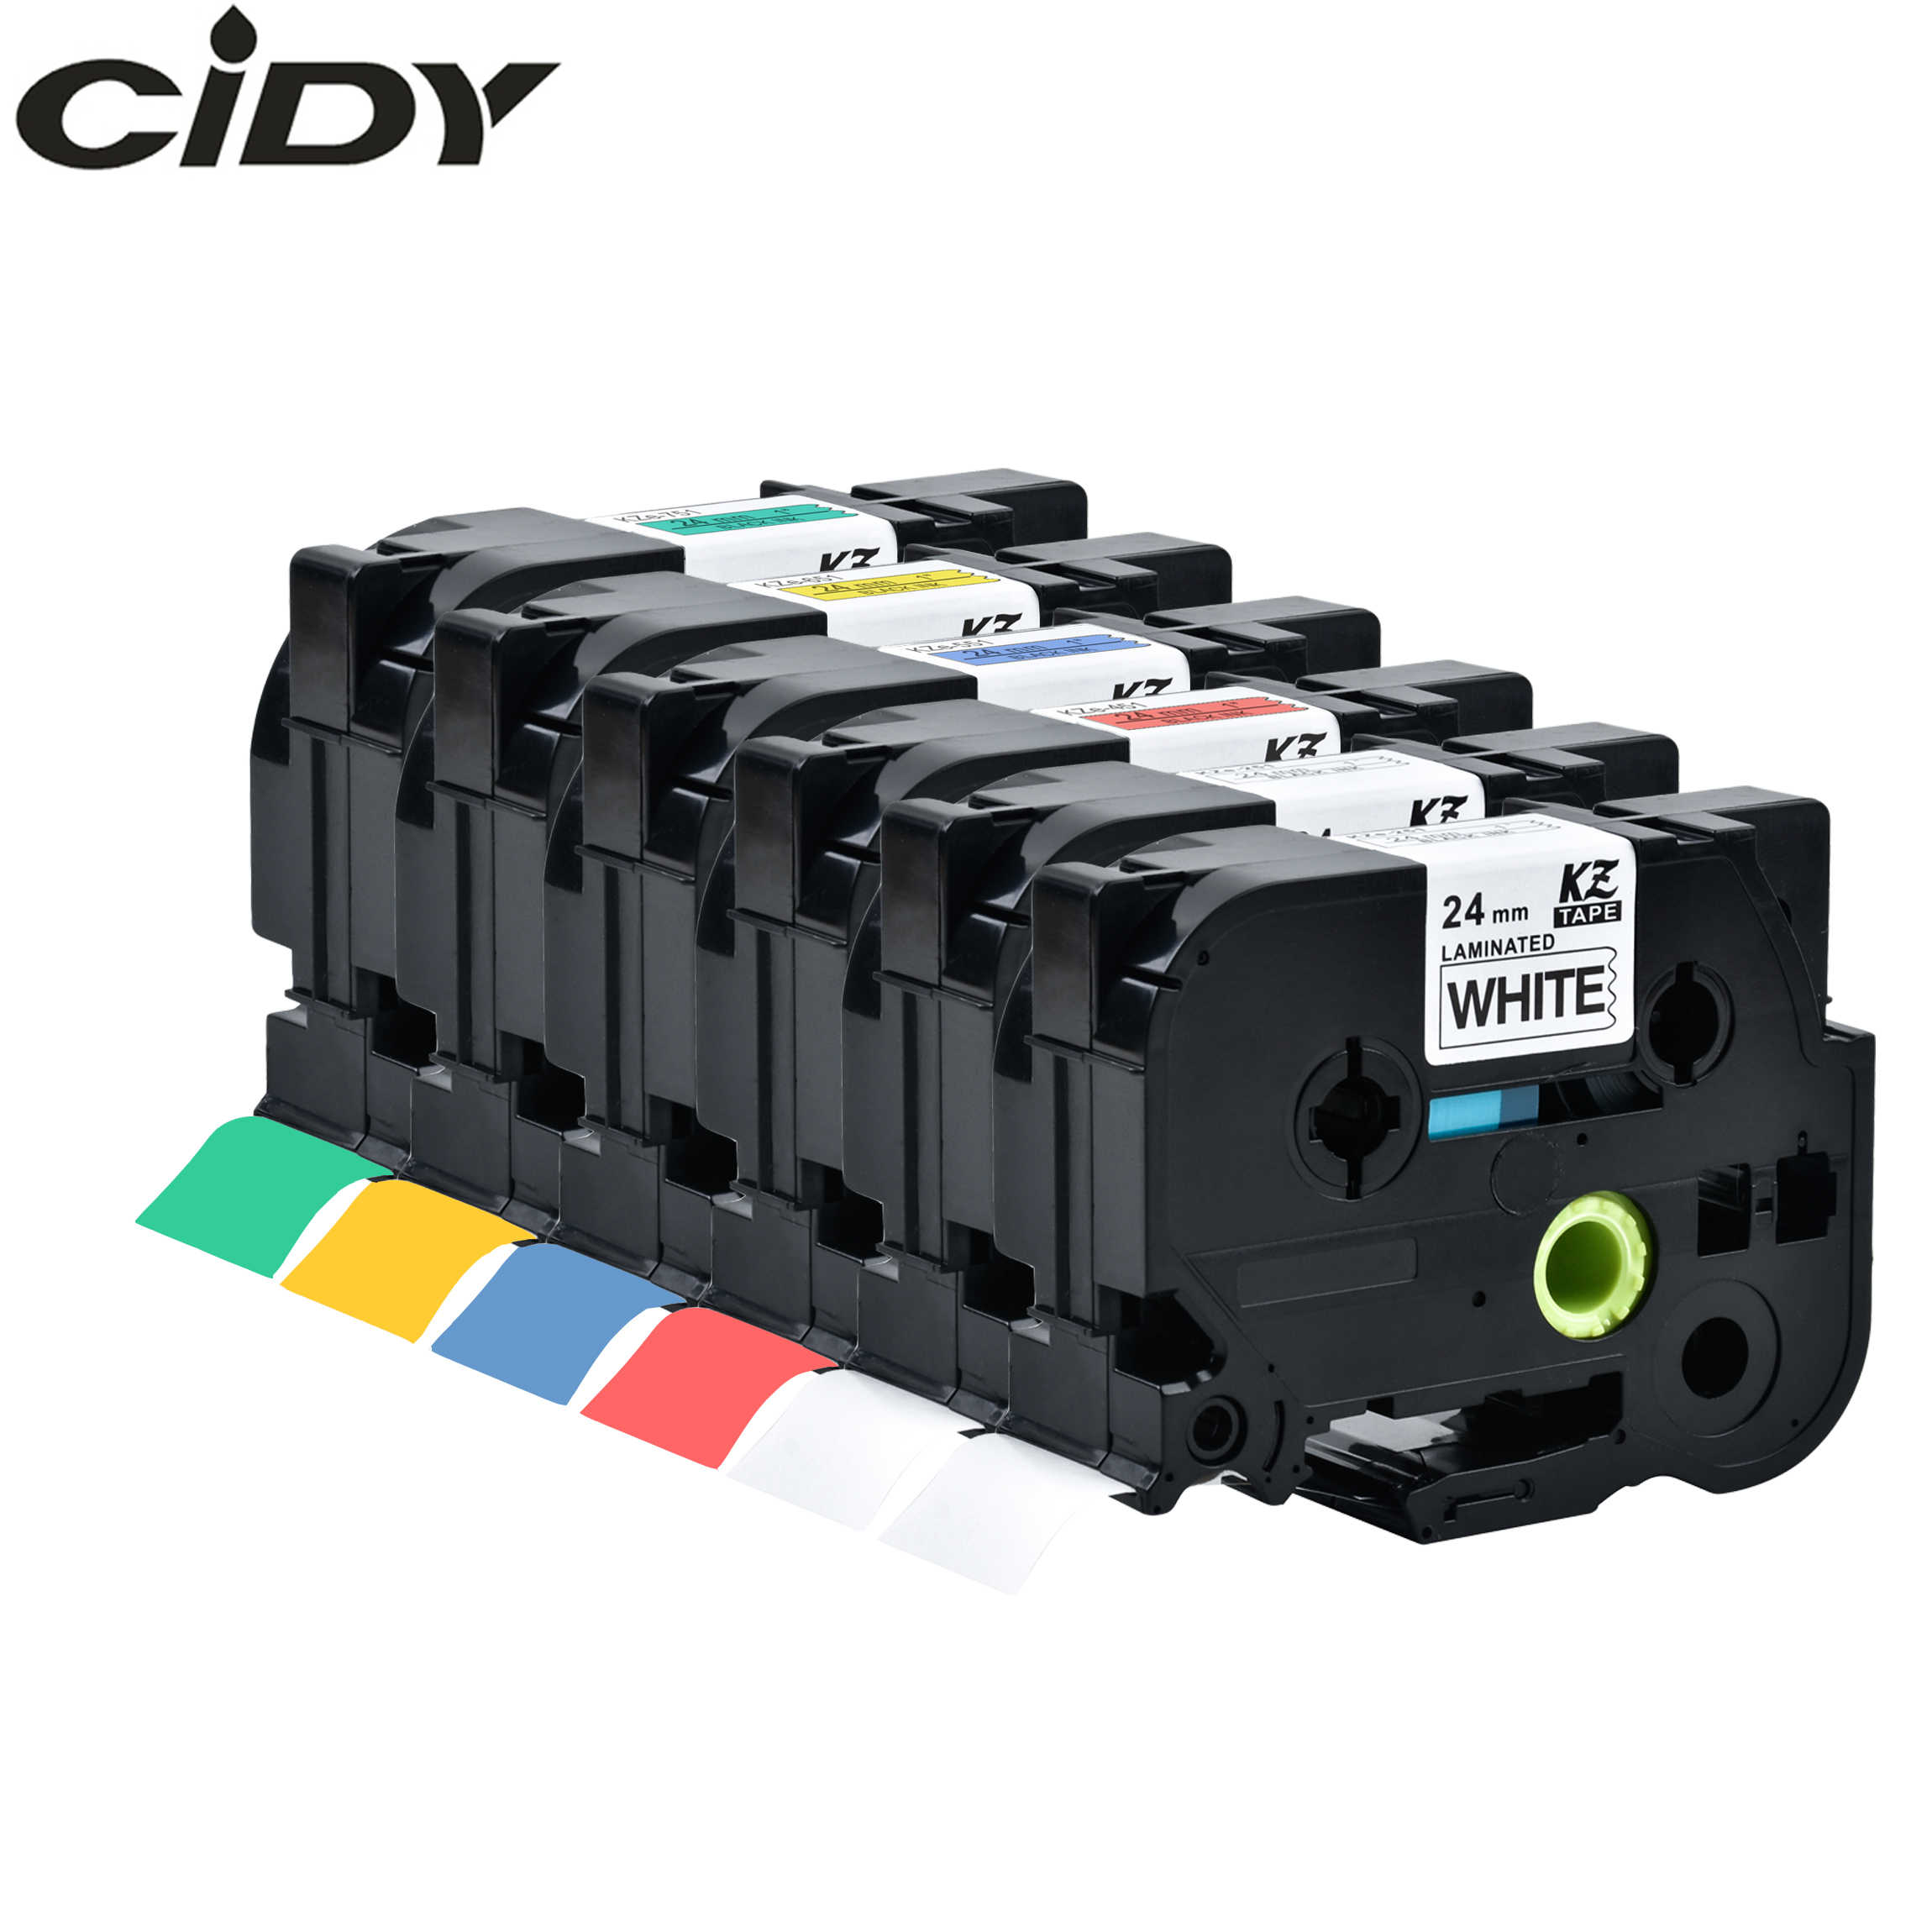 Cidy Multicolor Kompatibel Dilaminasi Tze 251 Tze251 24 Mm Black On White Tape Tze-251 Tz-251 untuk Brother P-Touch Printer Tze-151